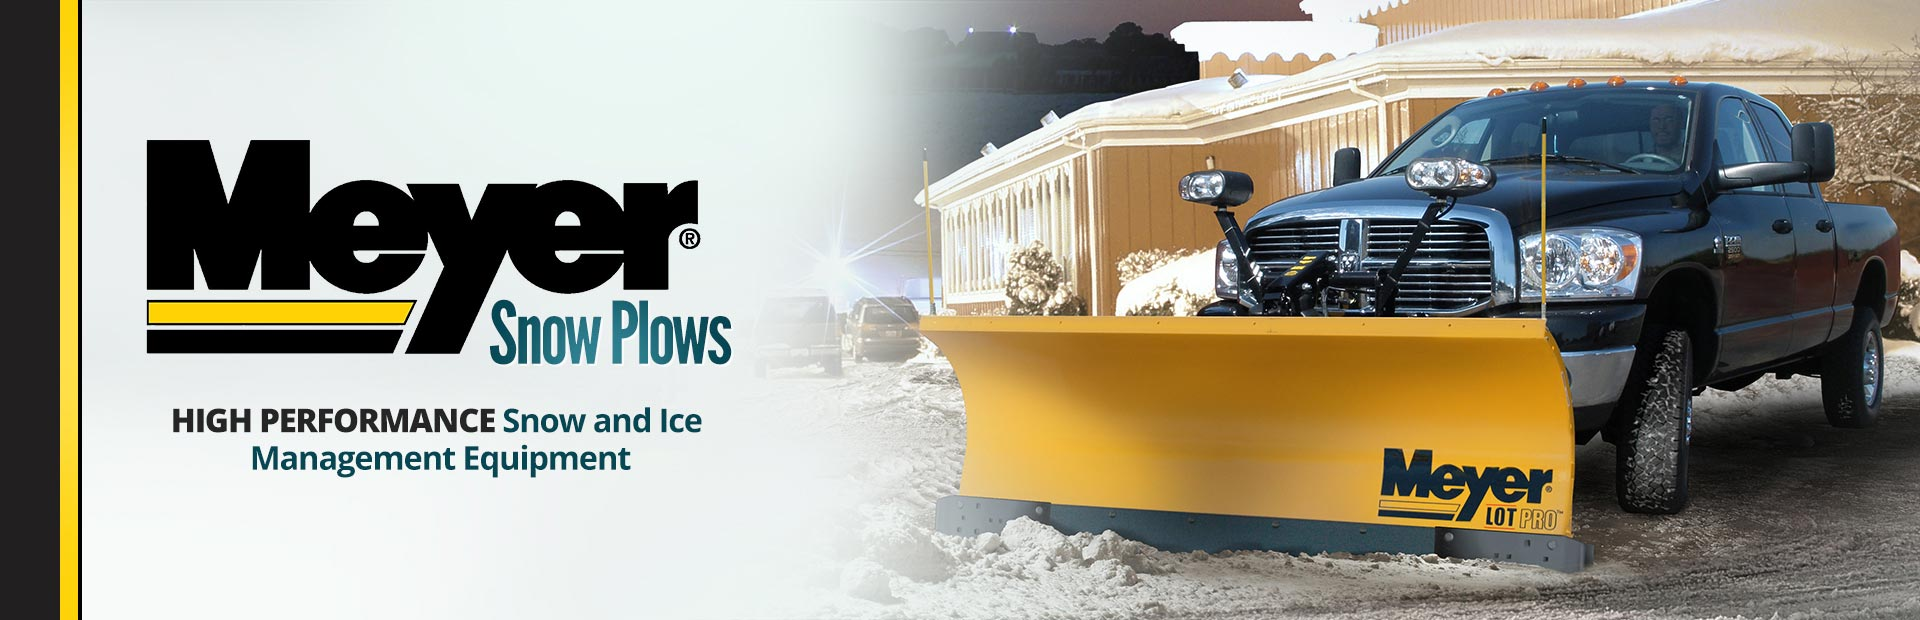 Meyer Snow Plows: Contact us for details.